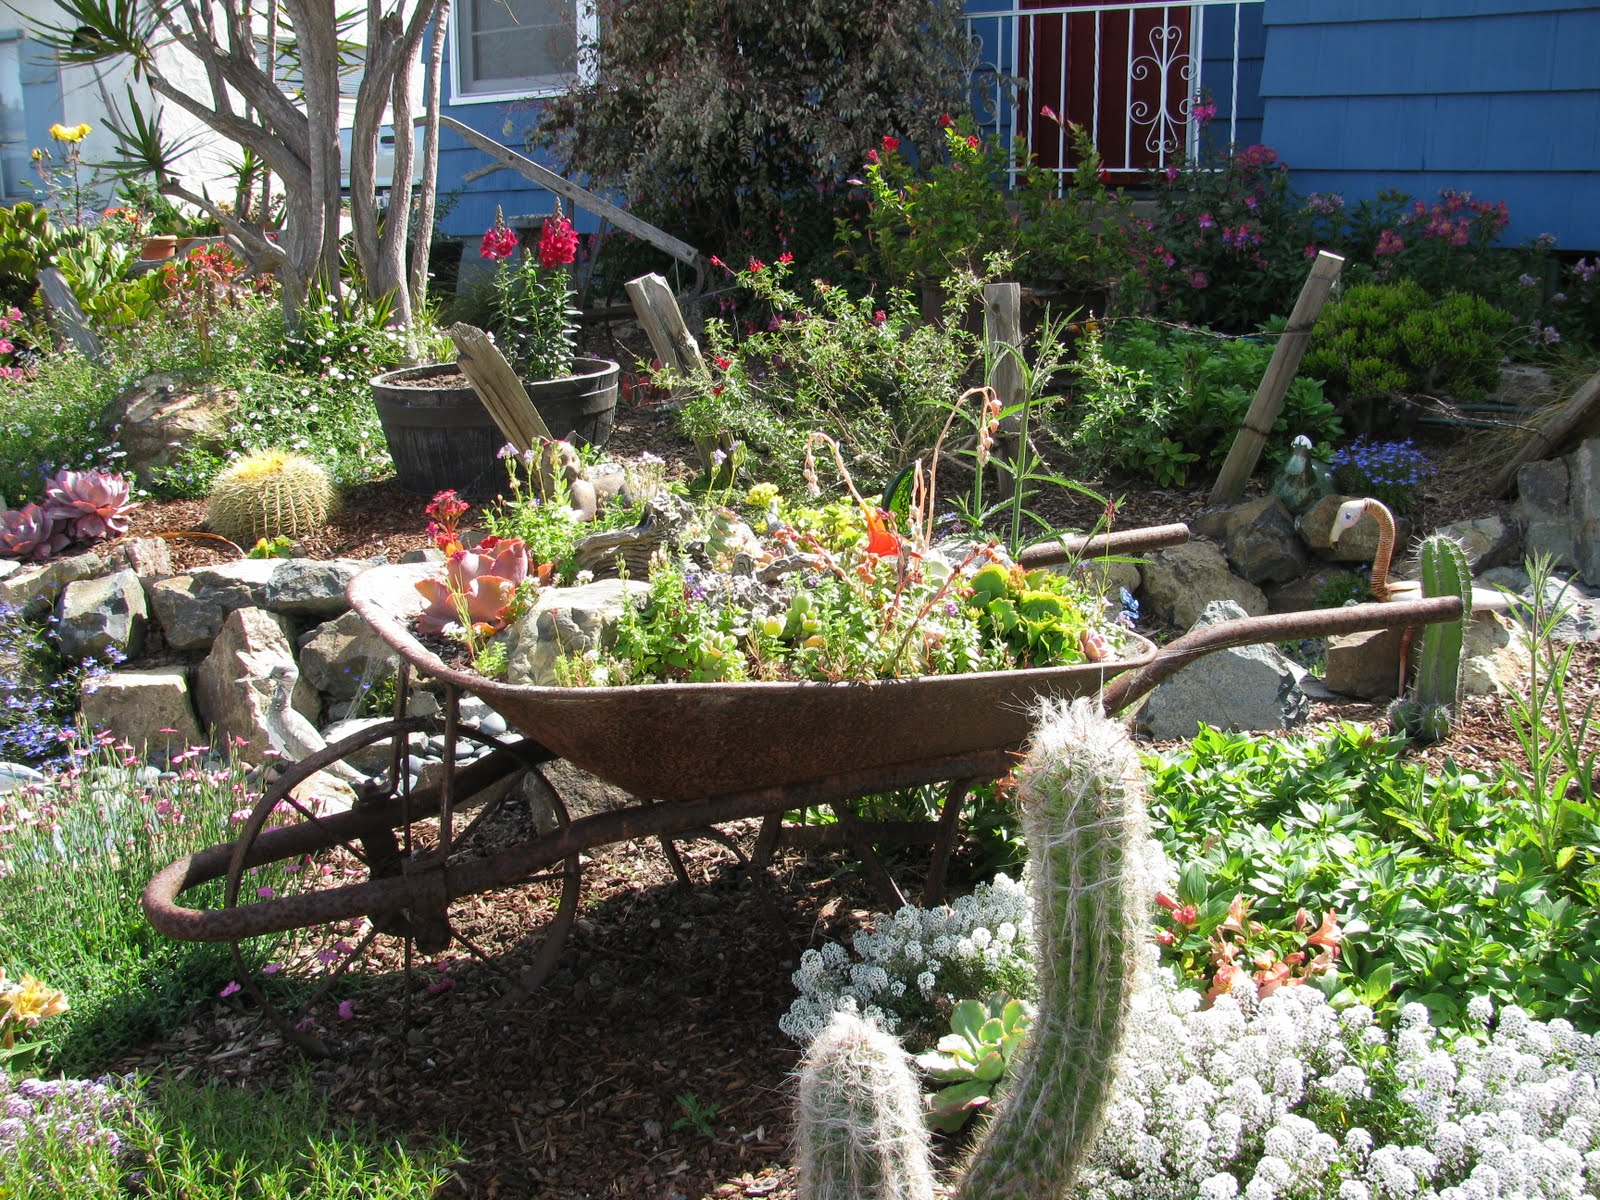 ... Laurent And The Meditation Gardens The Serenity Of The Yogi, The Hidden  Gardens Are Like Comfort Food. The Xeriscaped Front Yard Is Whimsical And  Just A ...